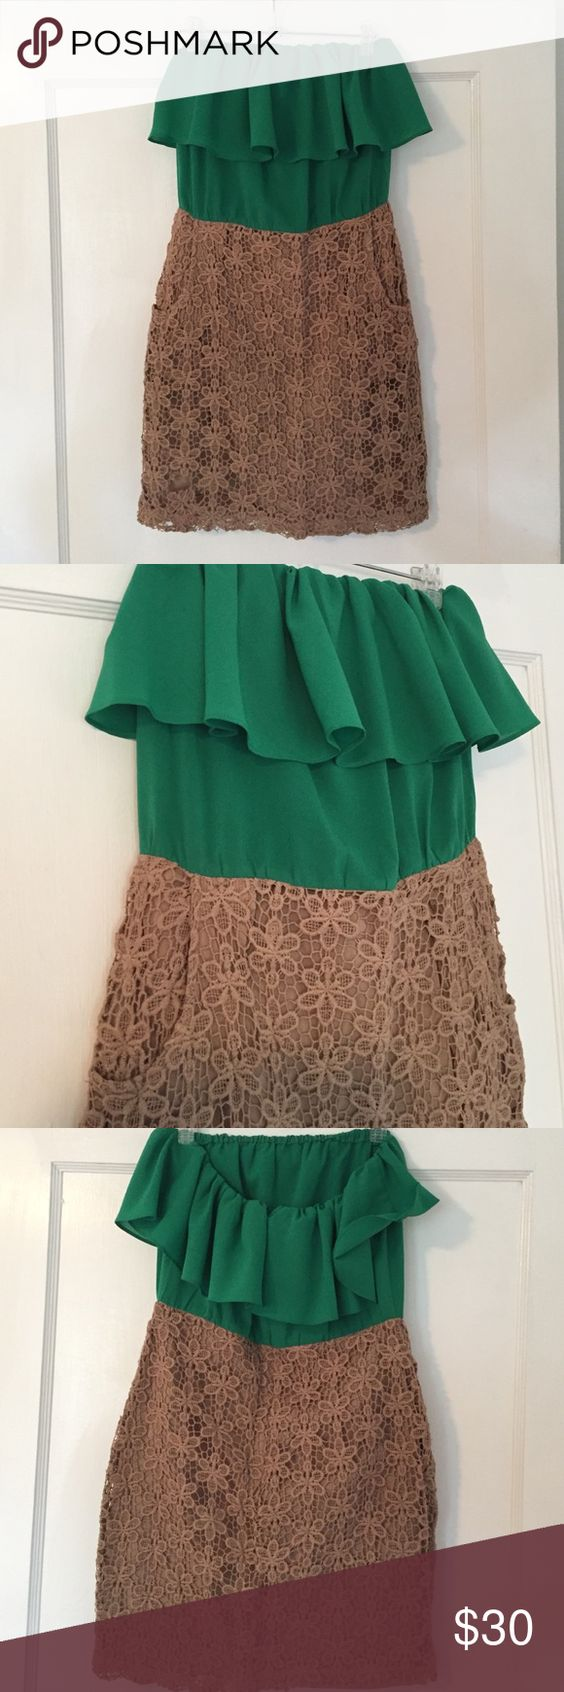 Ark and Co strapless dress Emerald green and beige mini dress with pockets. Bottom half is lace type material and top is chiffon. Worn one time(in the photo) and in great condition! Has a lining for the bottom part so it's not see through and top flattering and flirty. Ark & Co Dresses Strapless